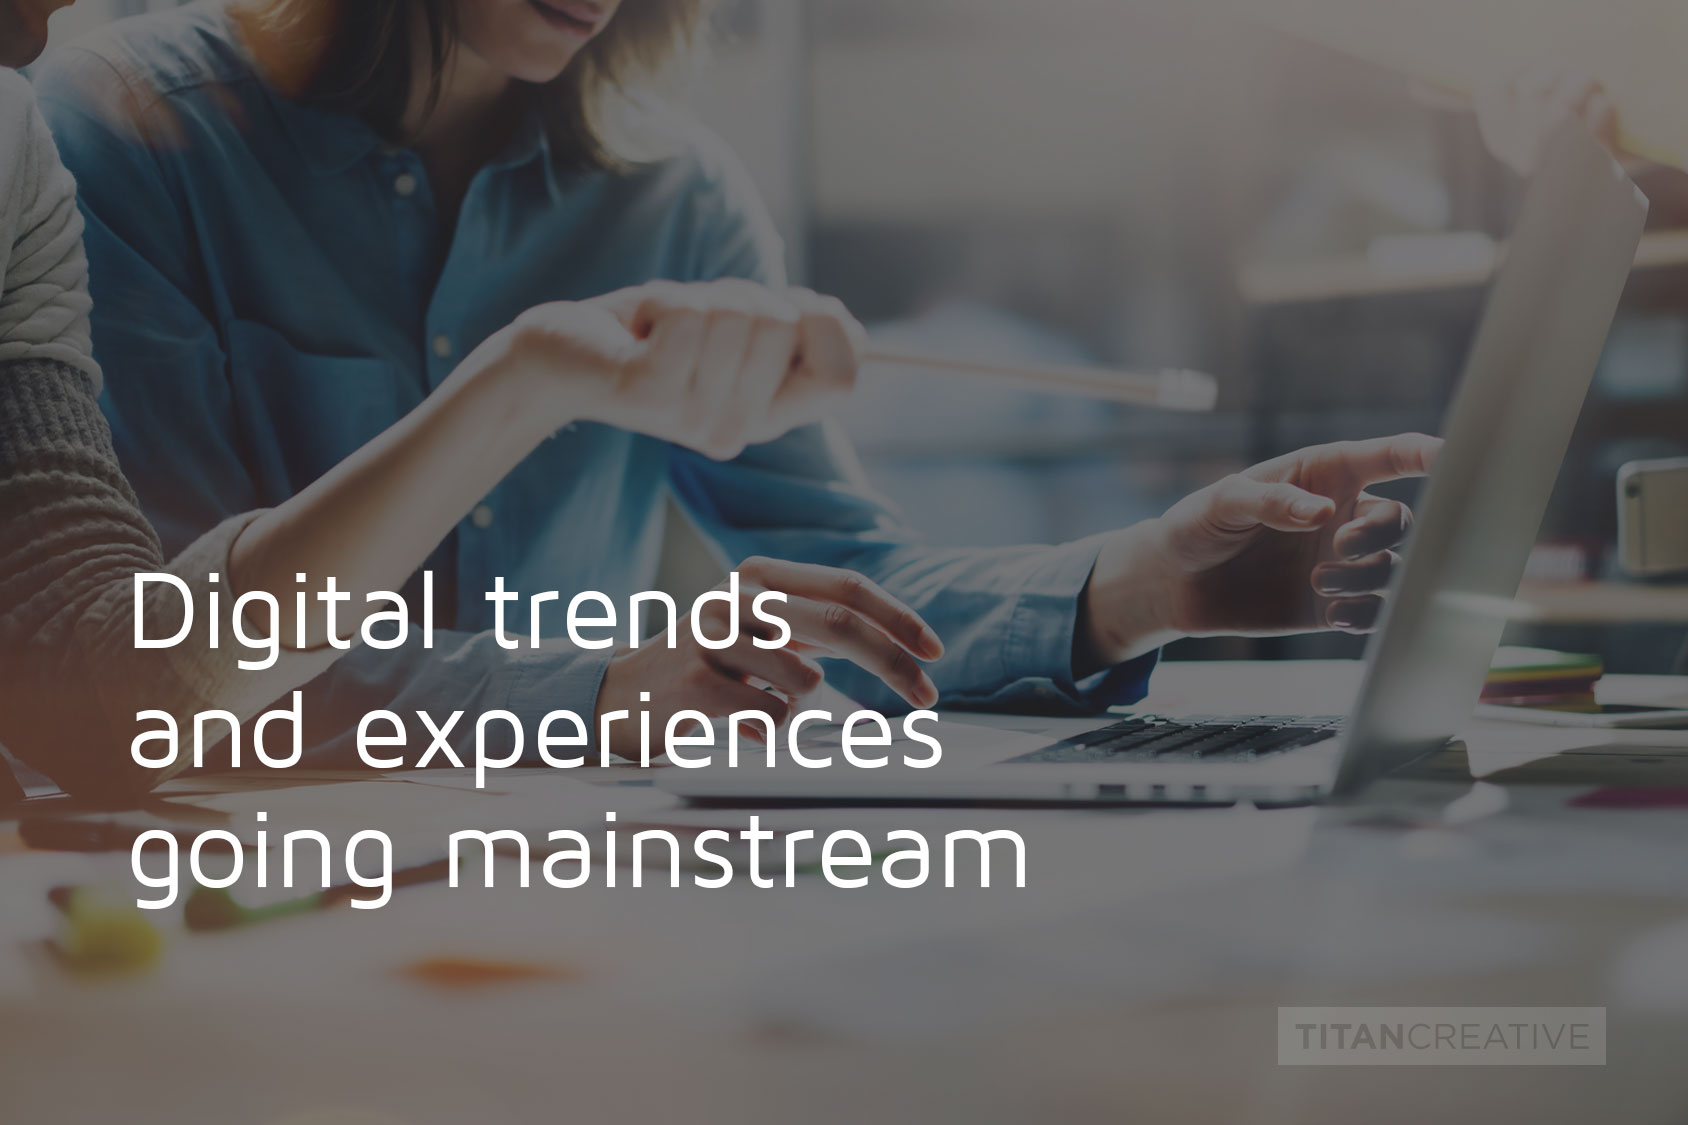 Digital experiences & trends going mainstream.